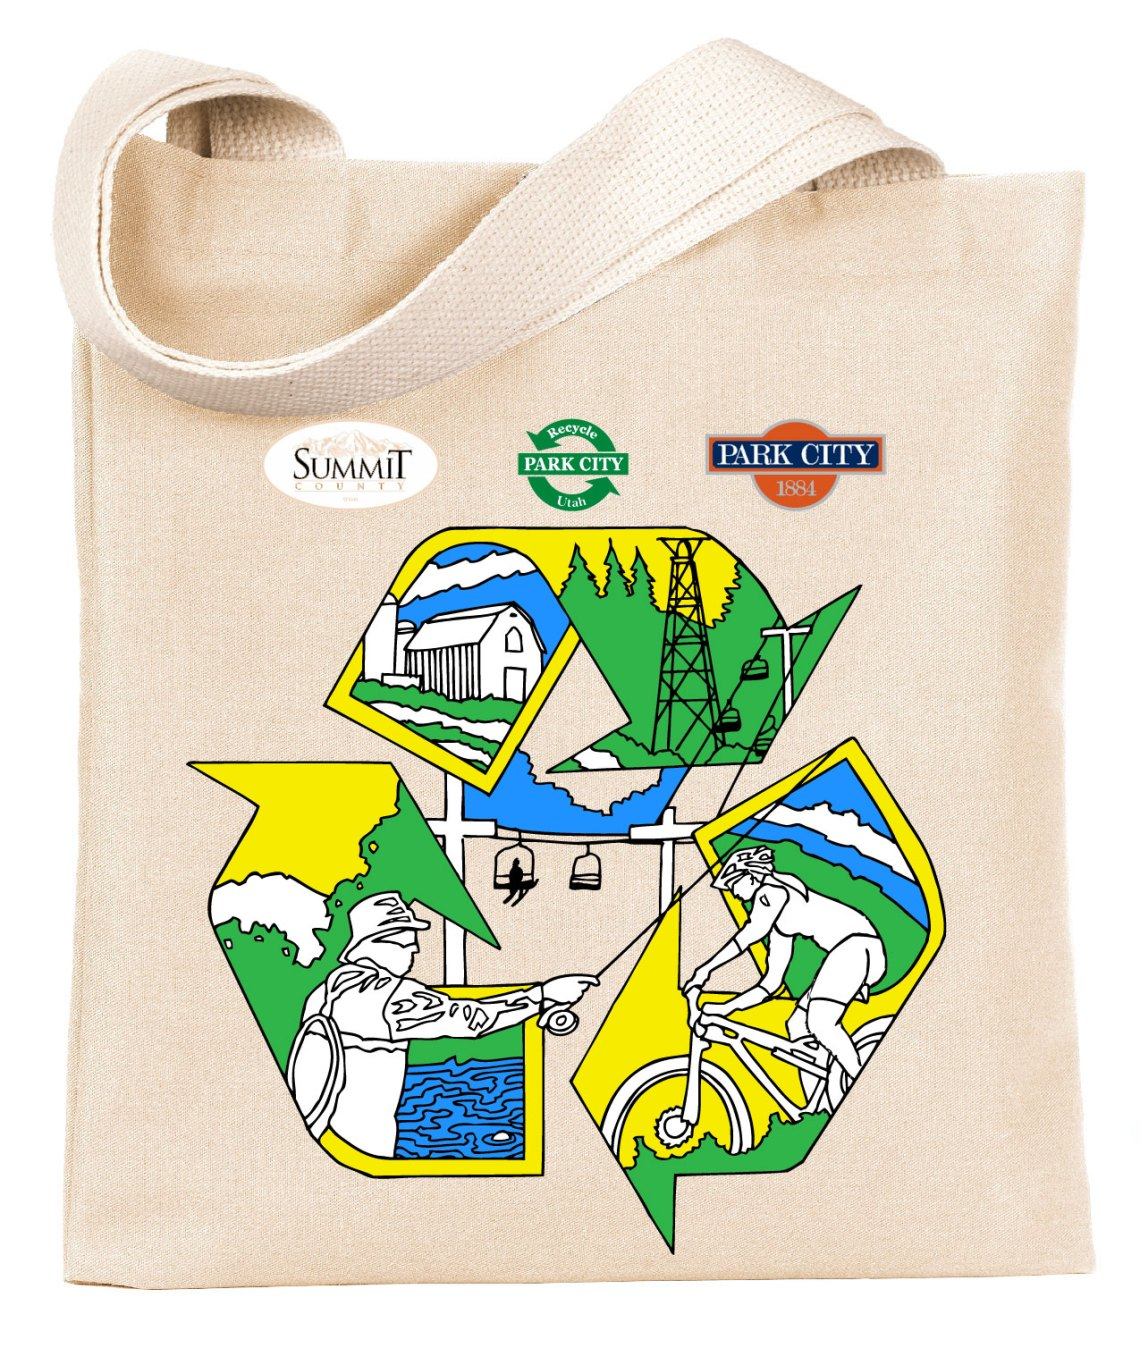 Tote Design and Logos-01